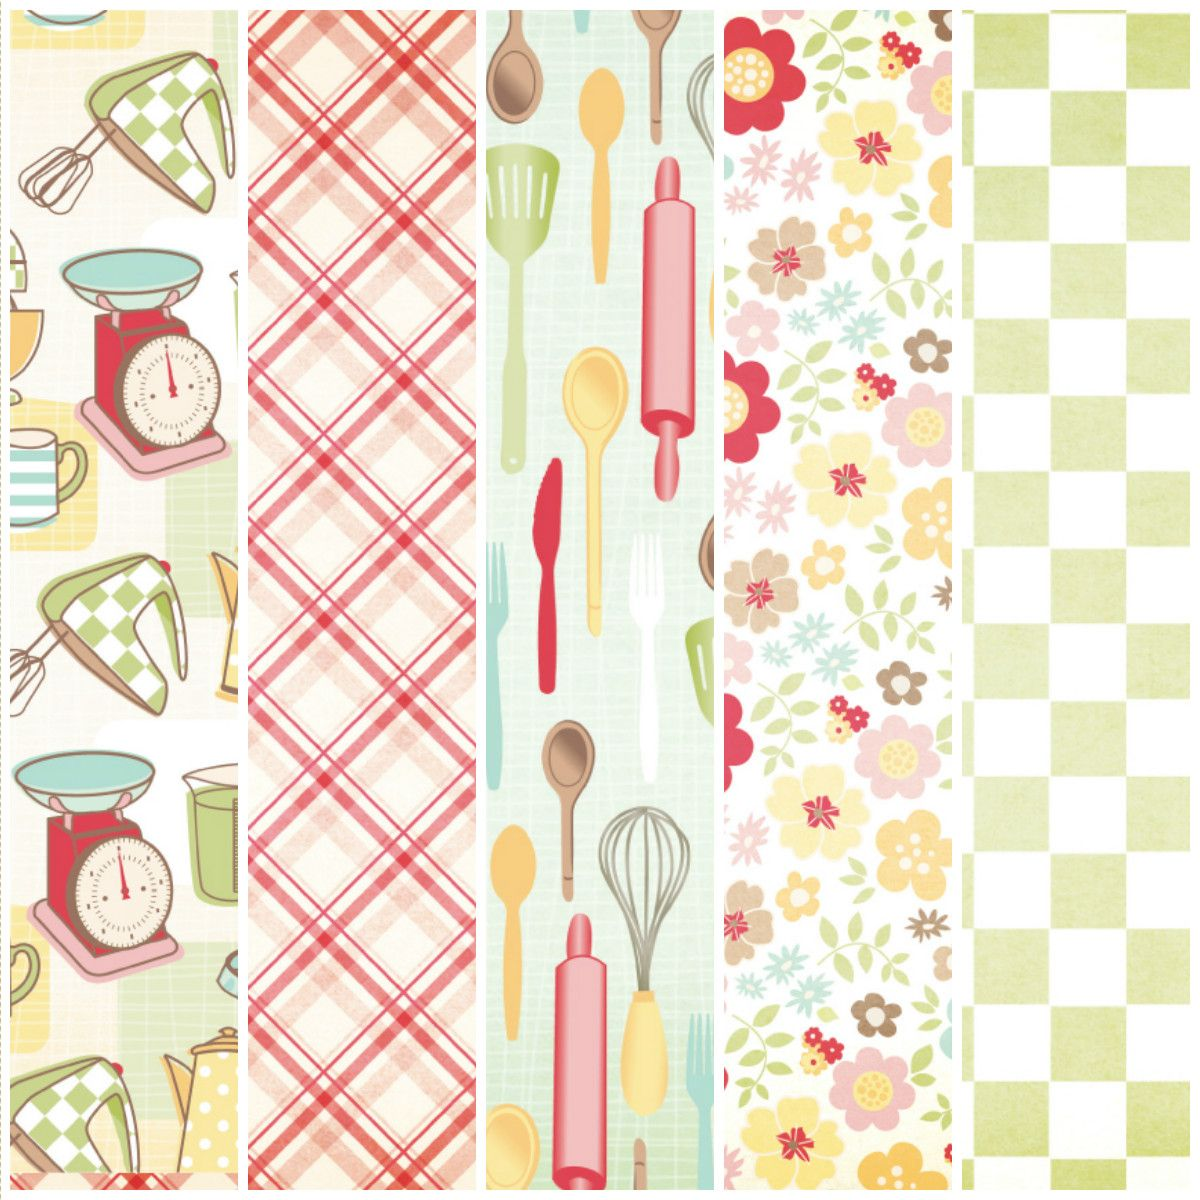 Free Fifties Kitchen Printables From Papercraft